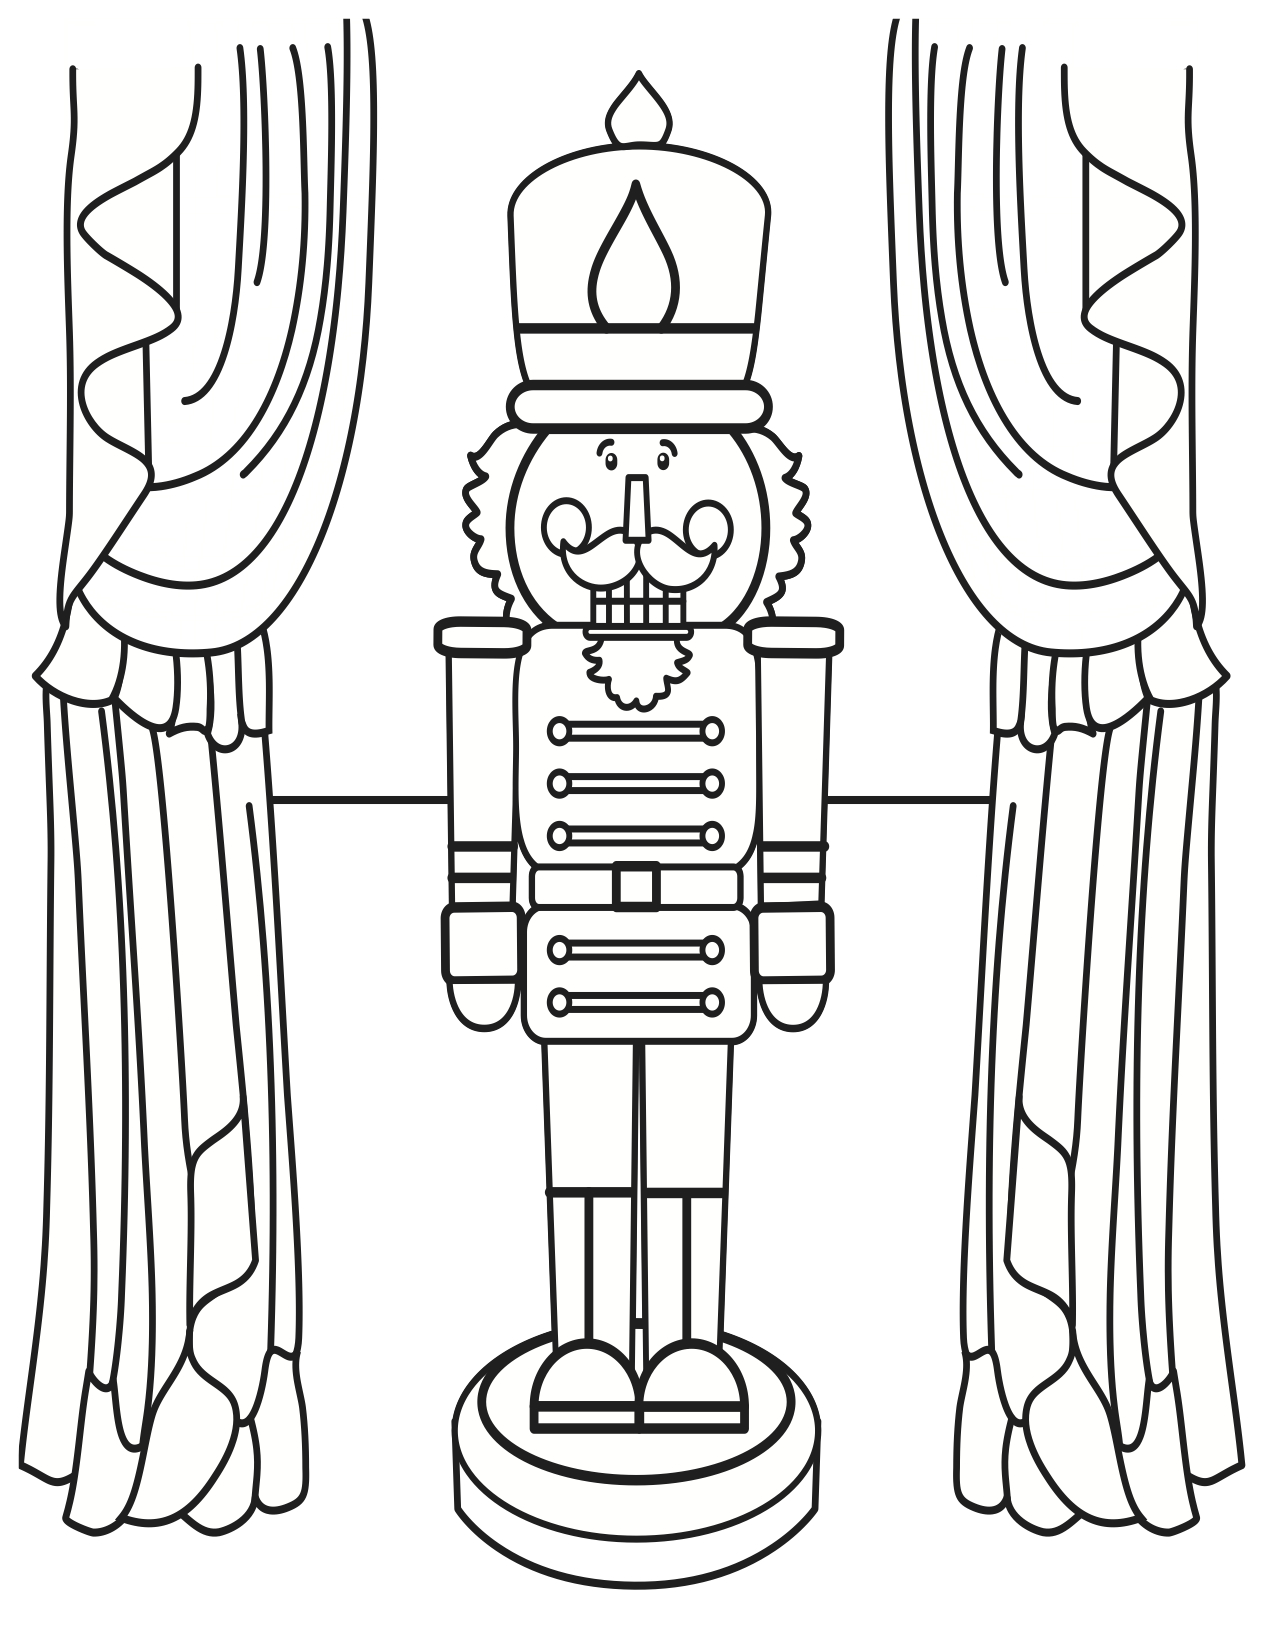 1275x1650 Nut Coloring Page Images And Glum Me Within Nuts Pages